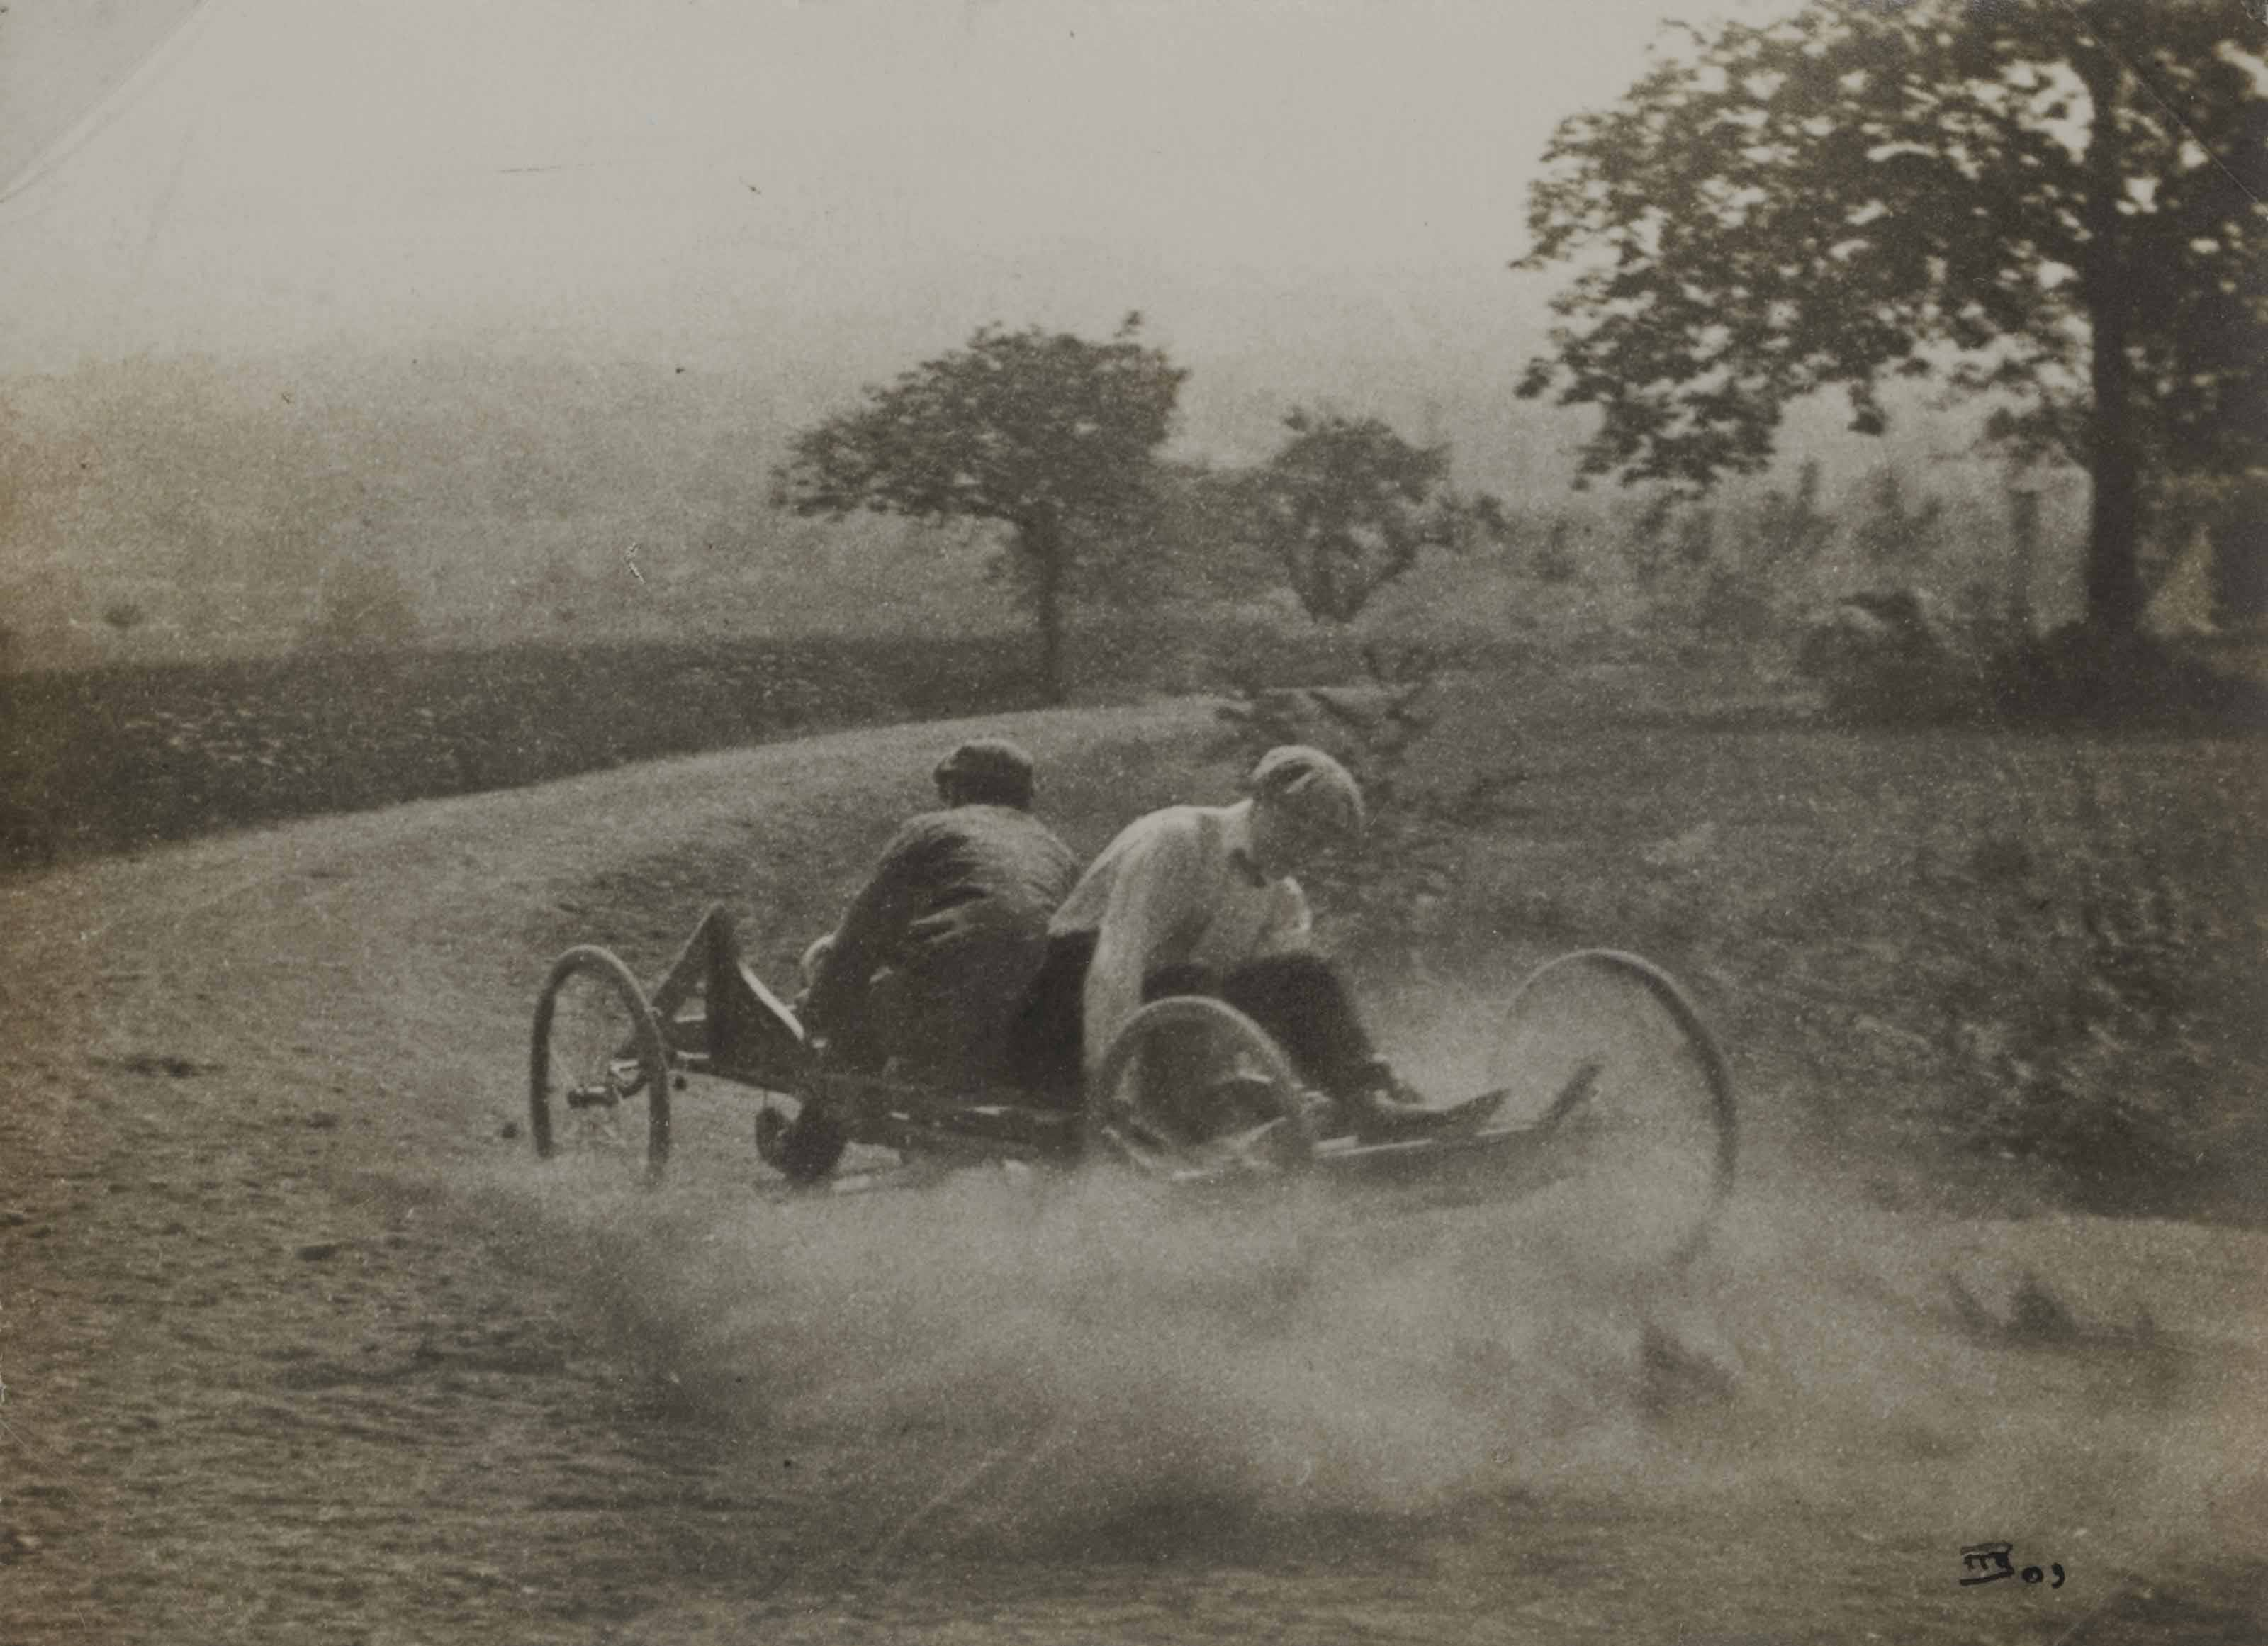 Go-cart run, Rouzat, été 1910